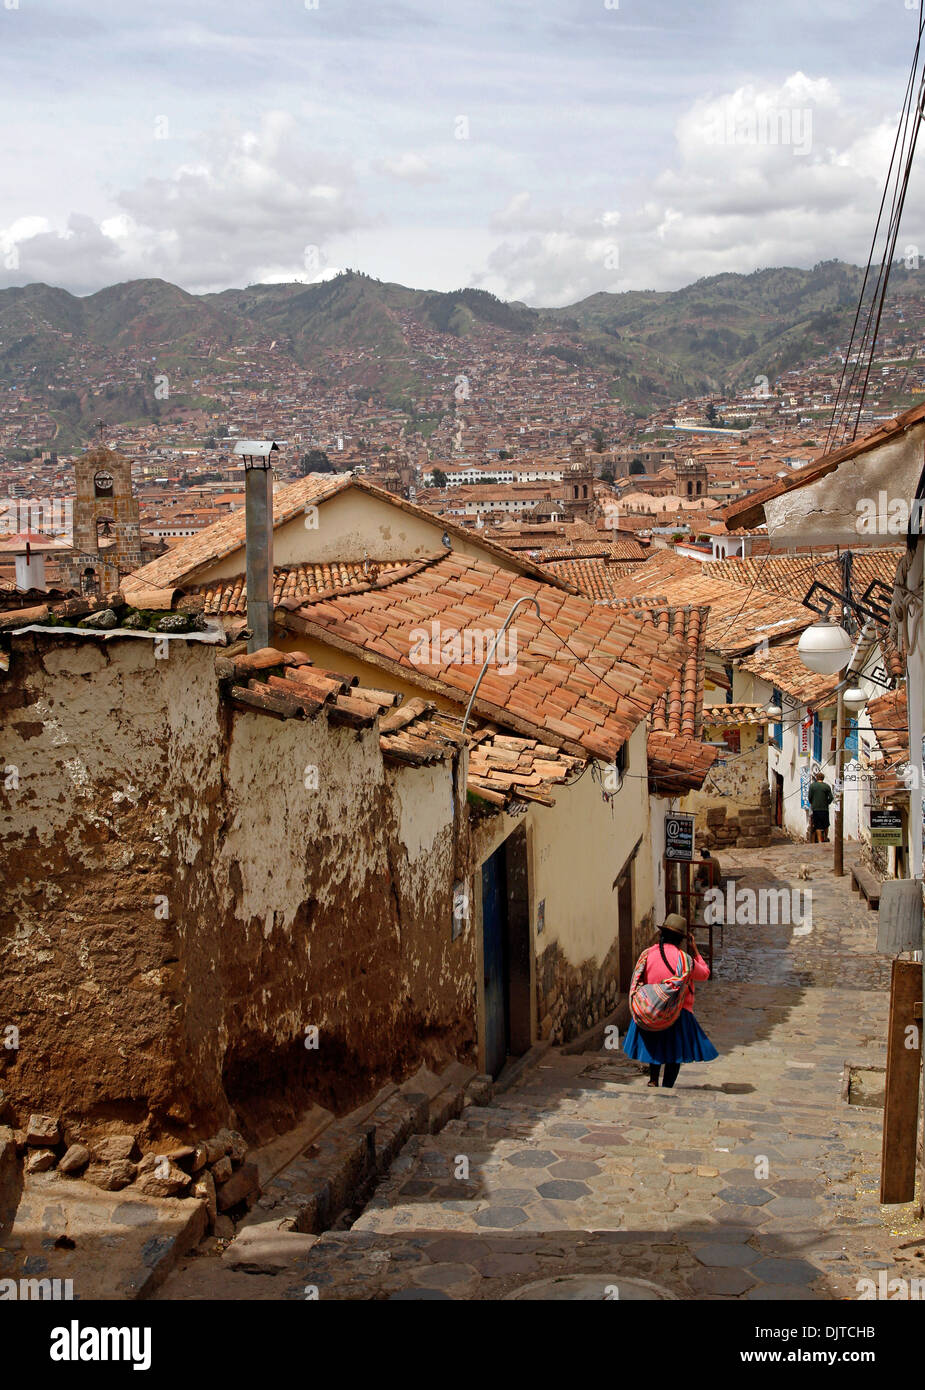 Street scene in San Blas neighborhood with a view over the rooftops of Cuzco, Peru. - Stock Image